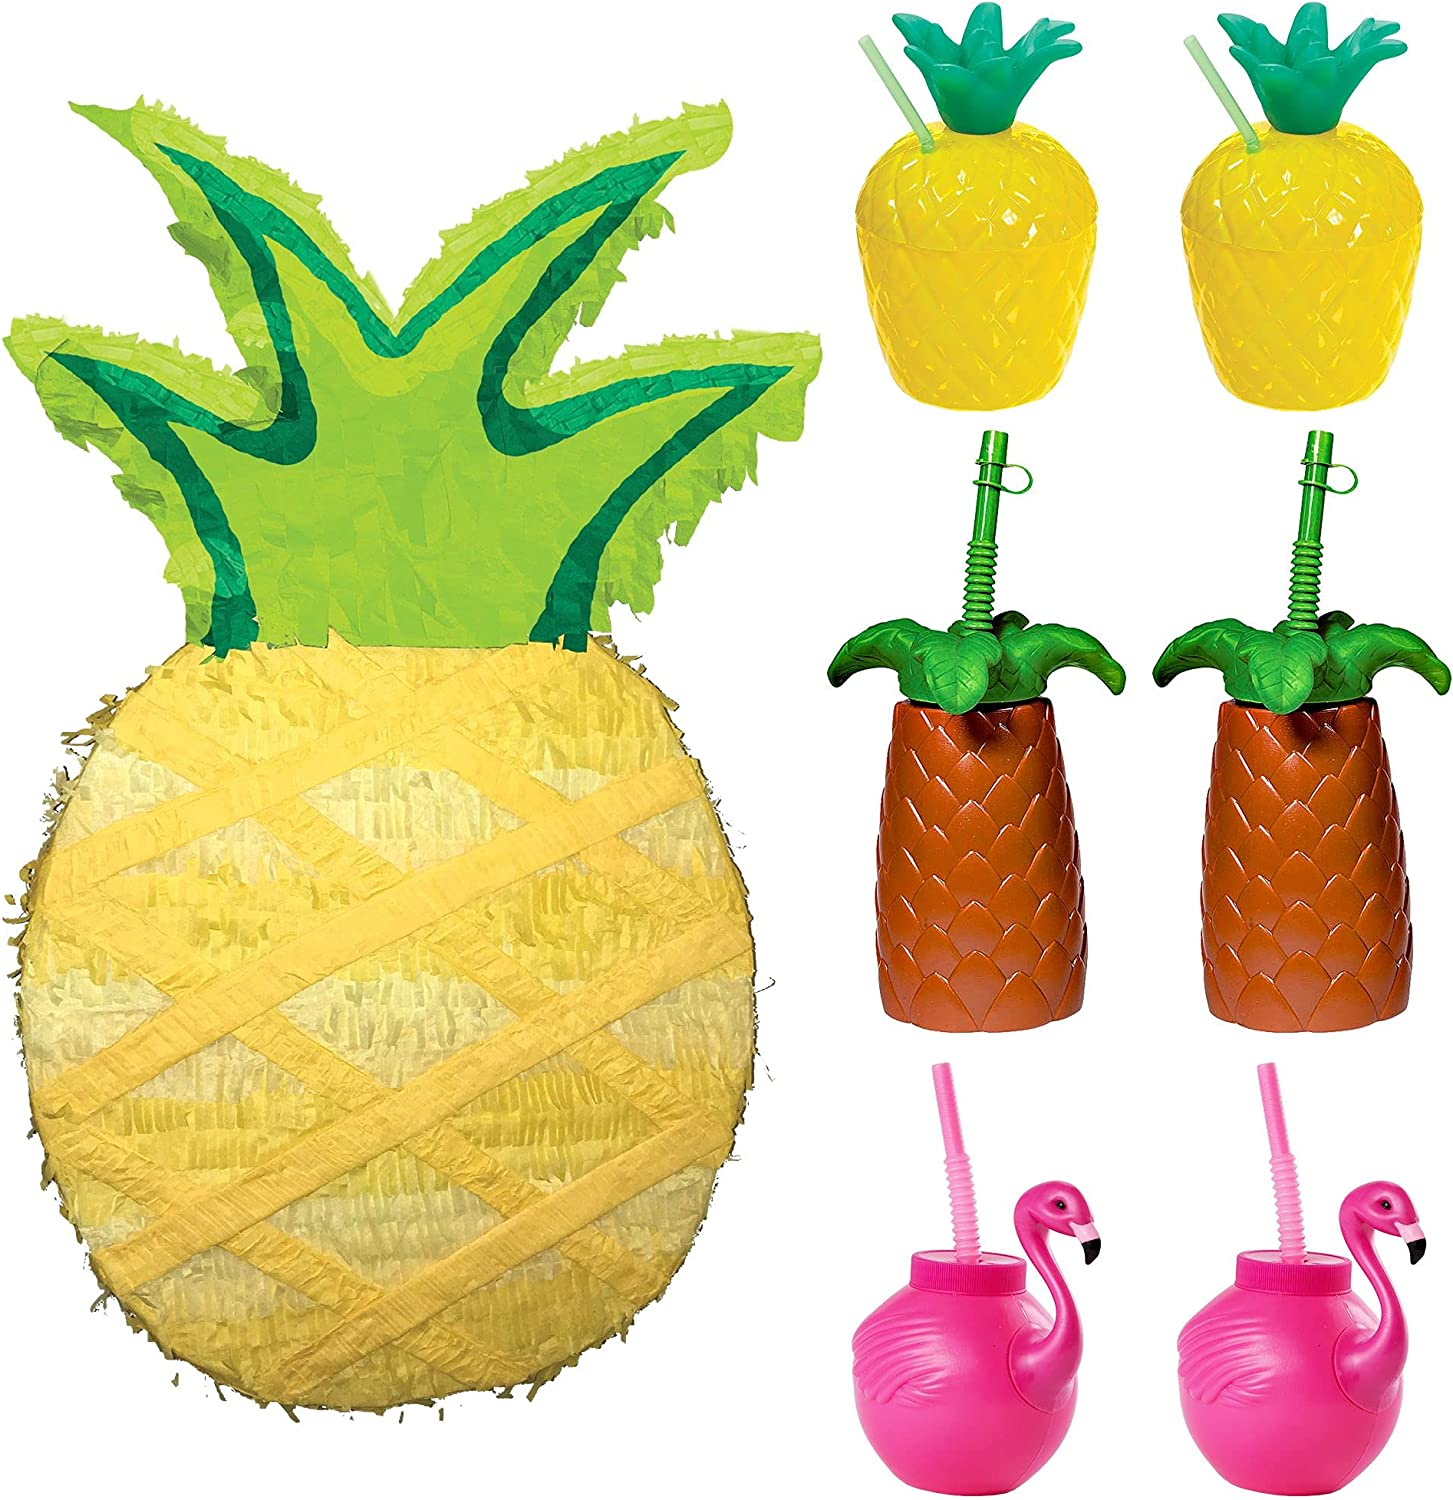 Max 65% OFF Party City Pineapple 2021 autumn and winter new Supplies for 6 Guests